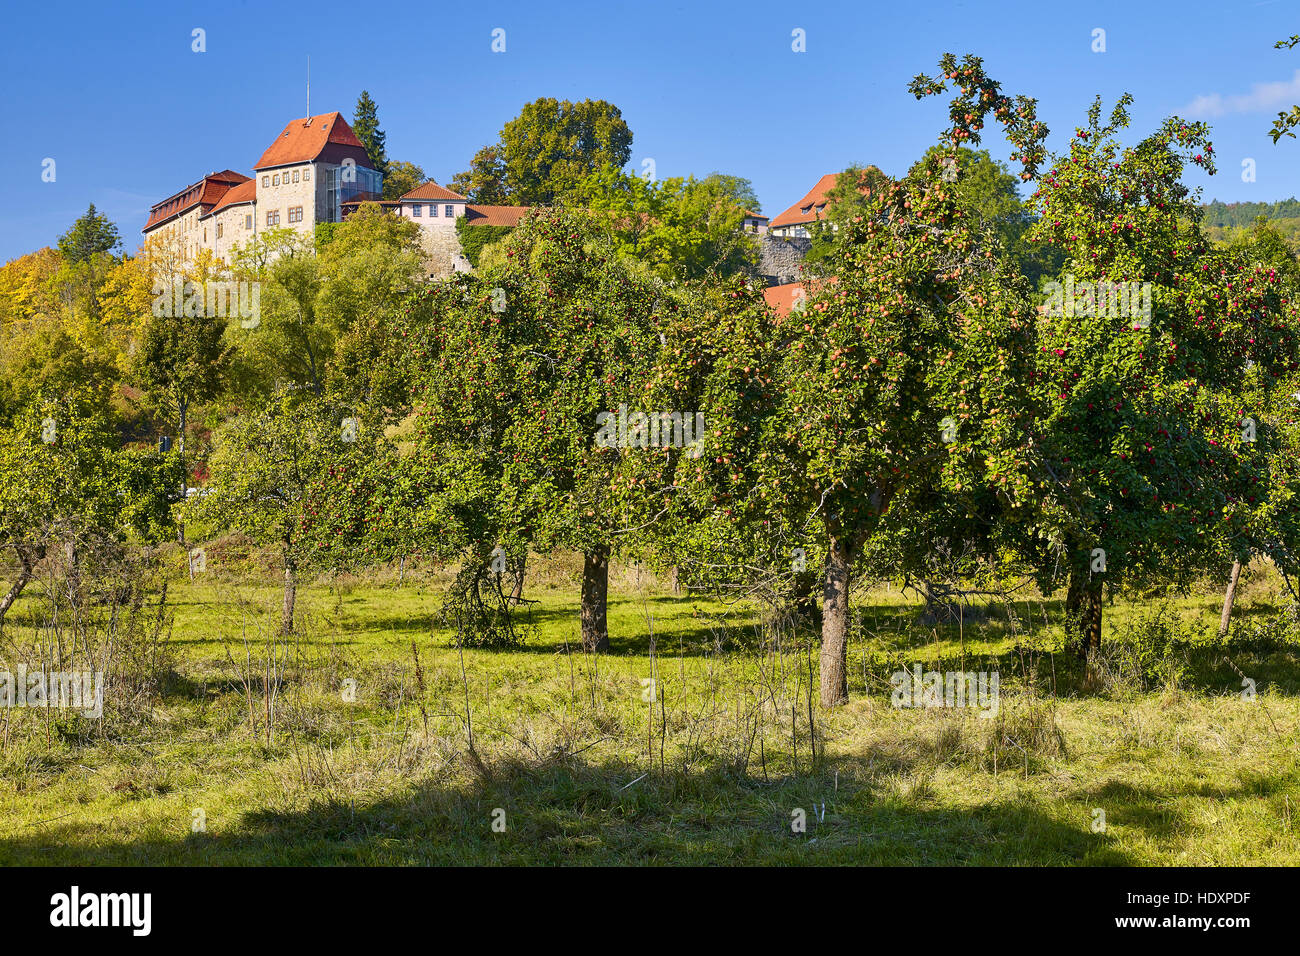 Creuzburg castle with fruit trees in Creuzburg, Thuringia, Germany - Stock Image